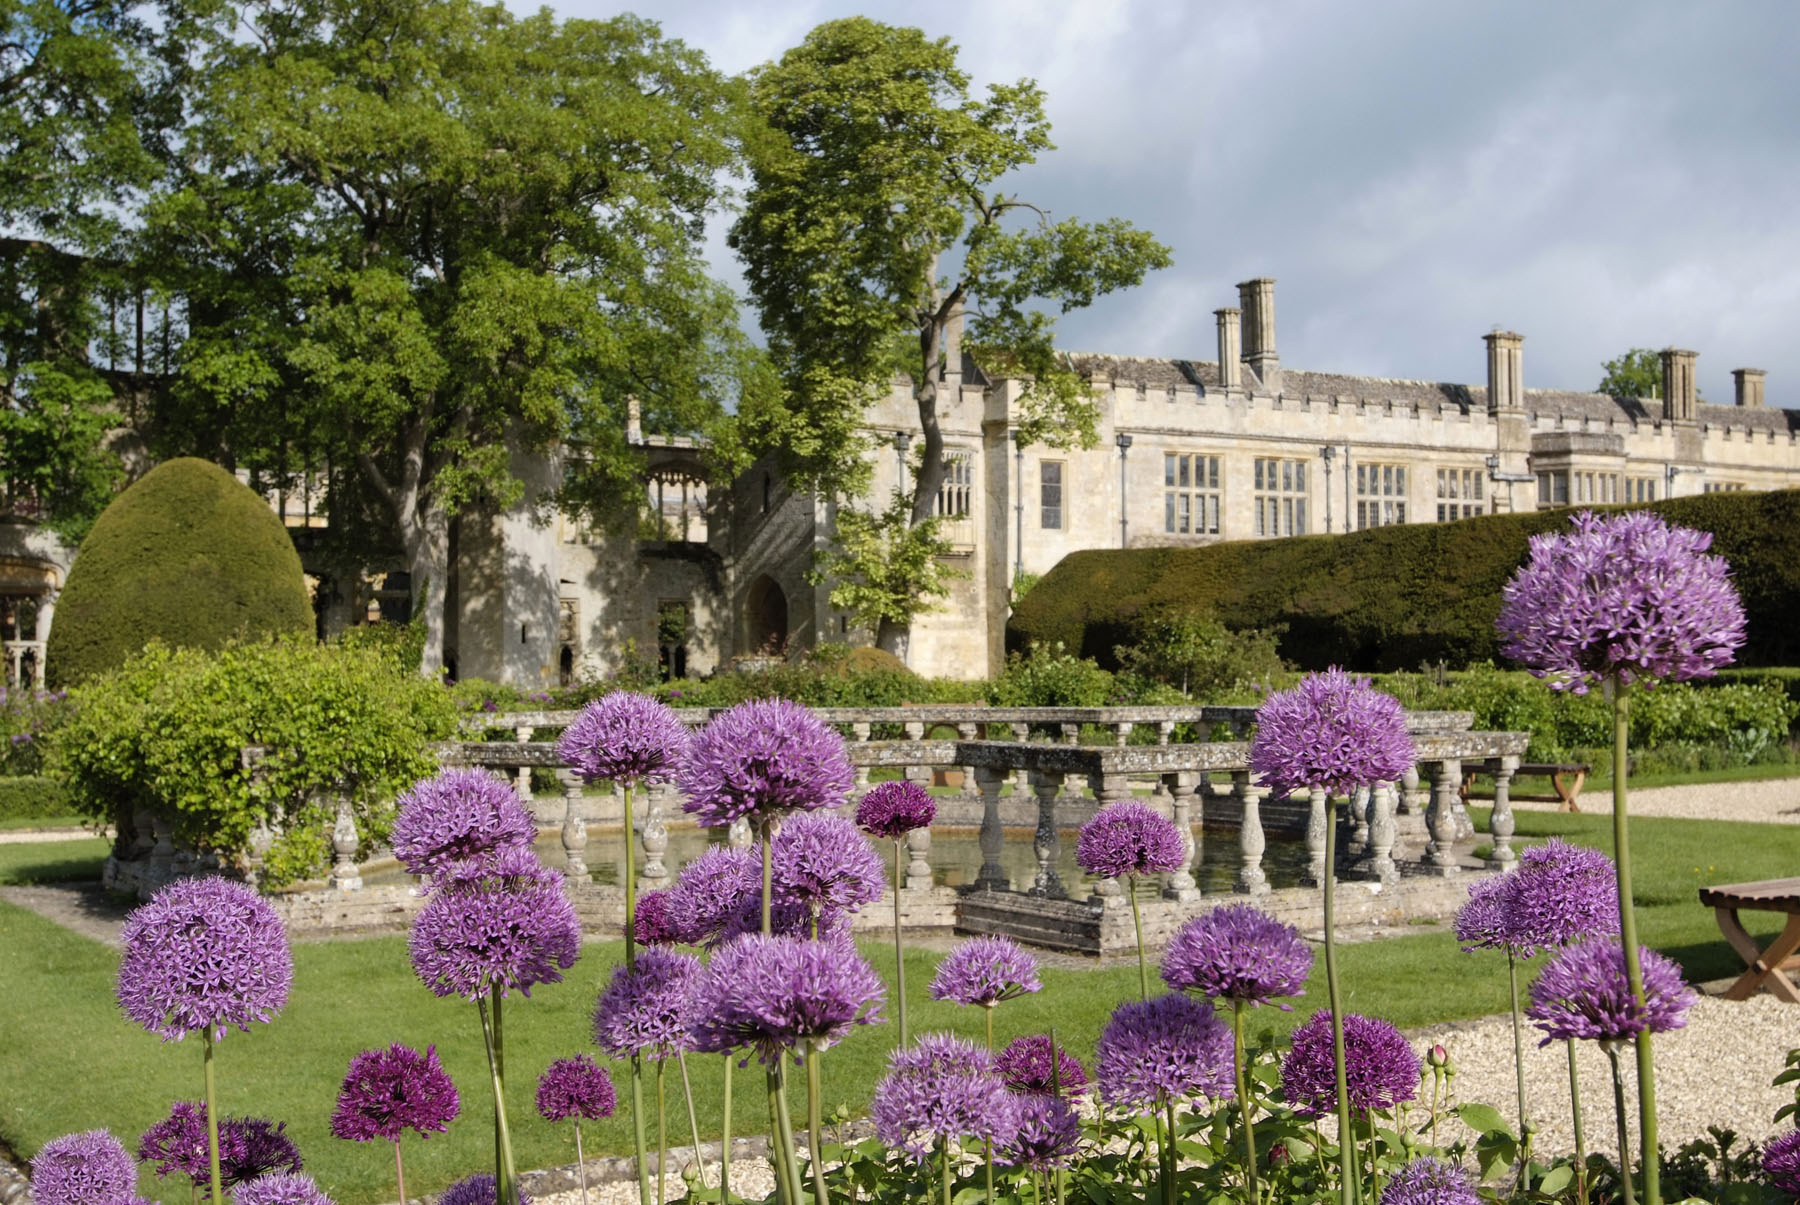 Cotswold gardens at Sudeley Castle looking through purple Allium heads